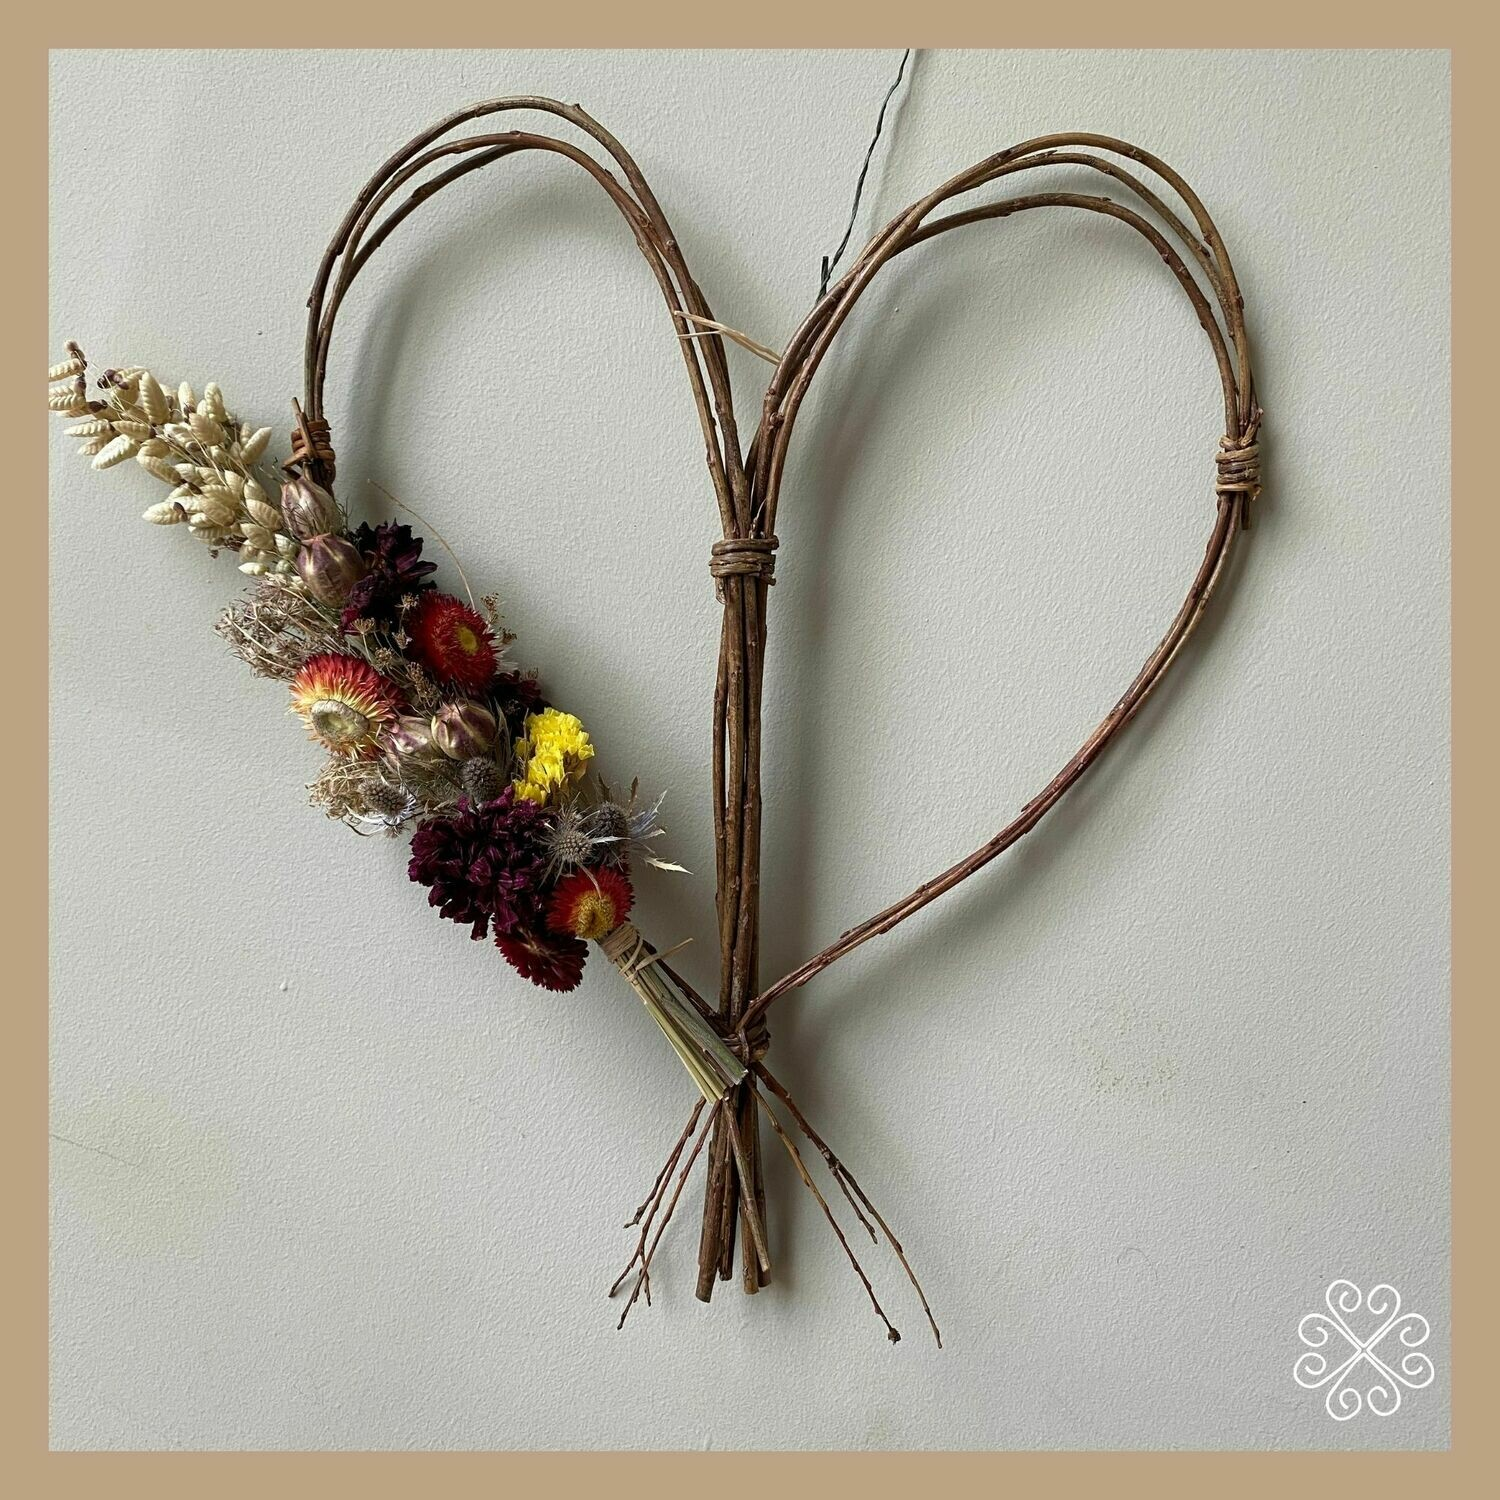 Heart Shaped willow wreath with dried flowers